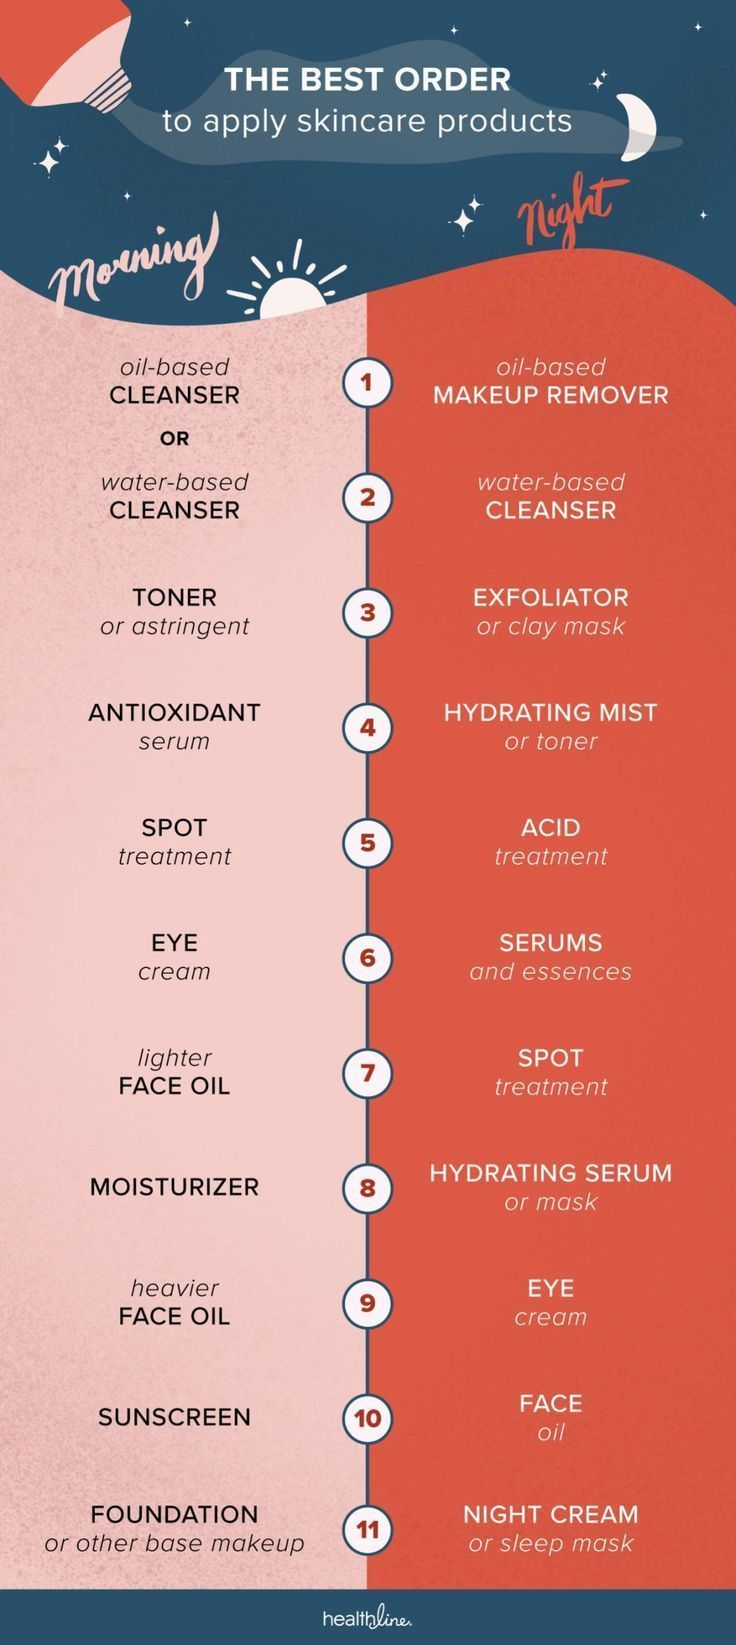 Photo of How to Apply Your Skin Care Products in the Right Order #healthyskin Order of Sk…